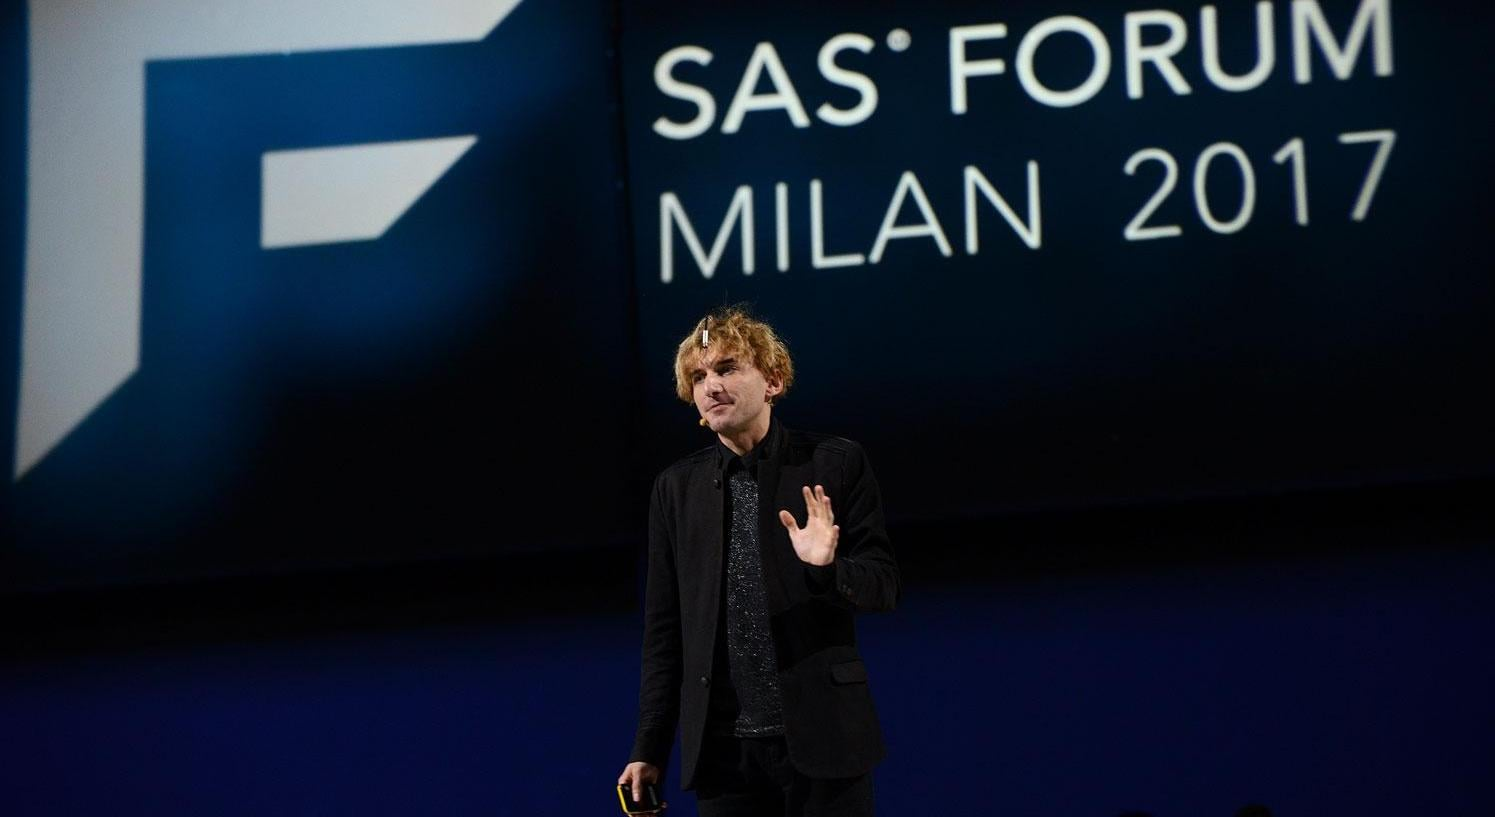 SAS Forum Milan 2017, Neil Harbisson guest